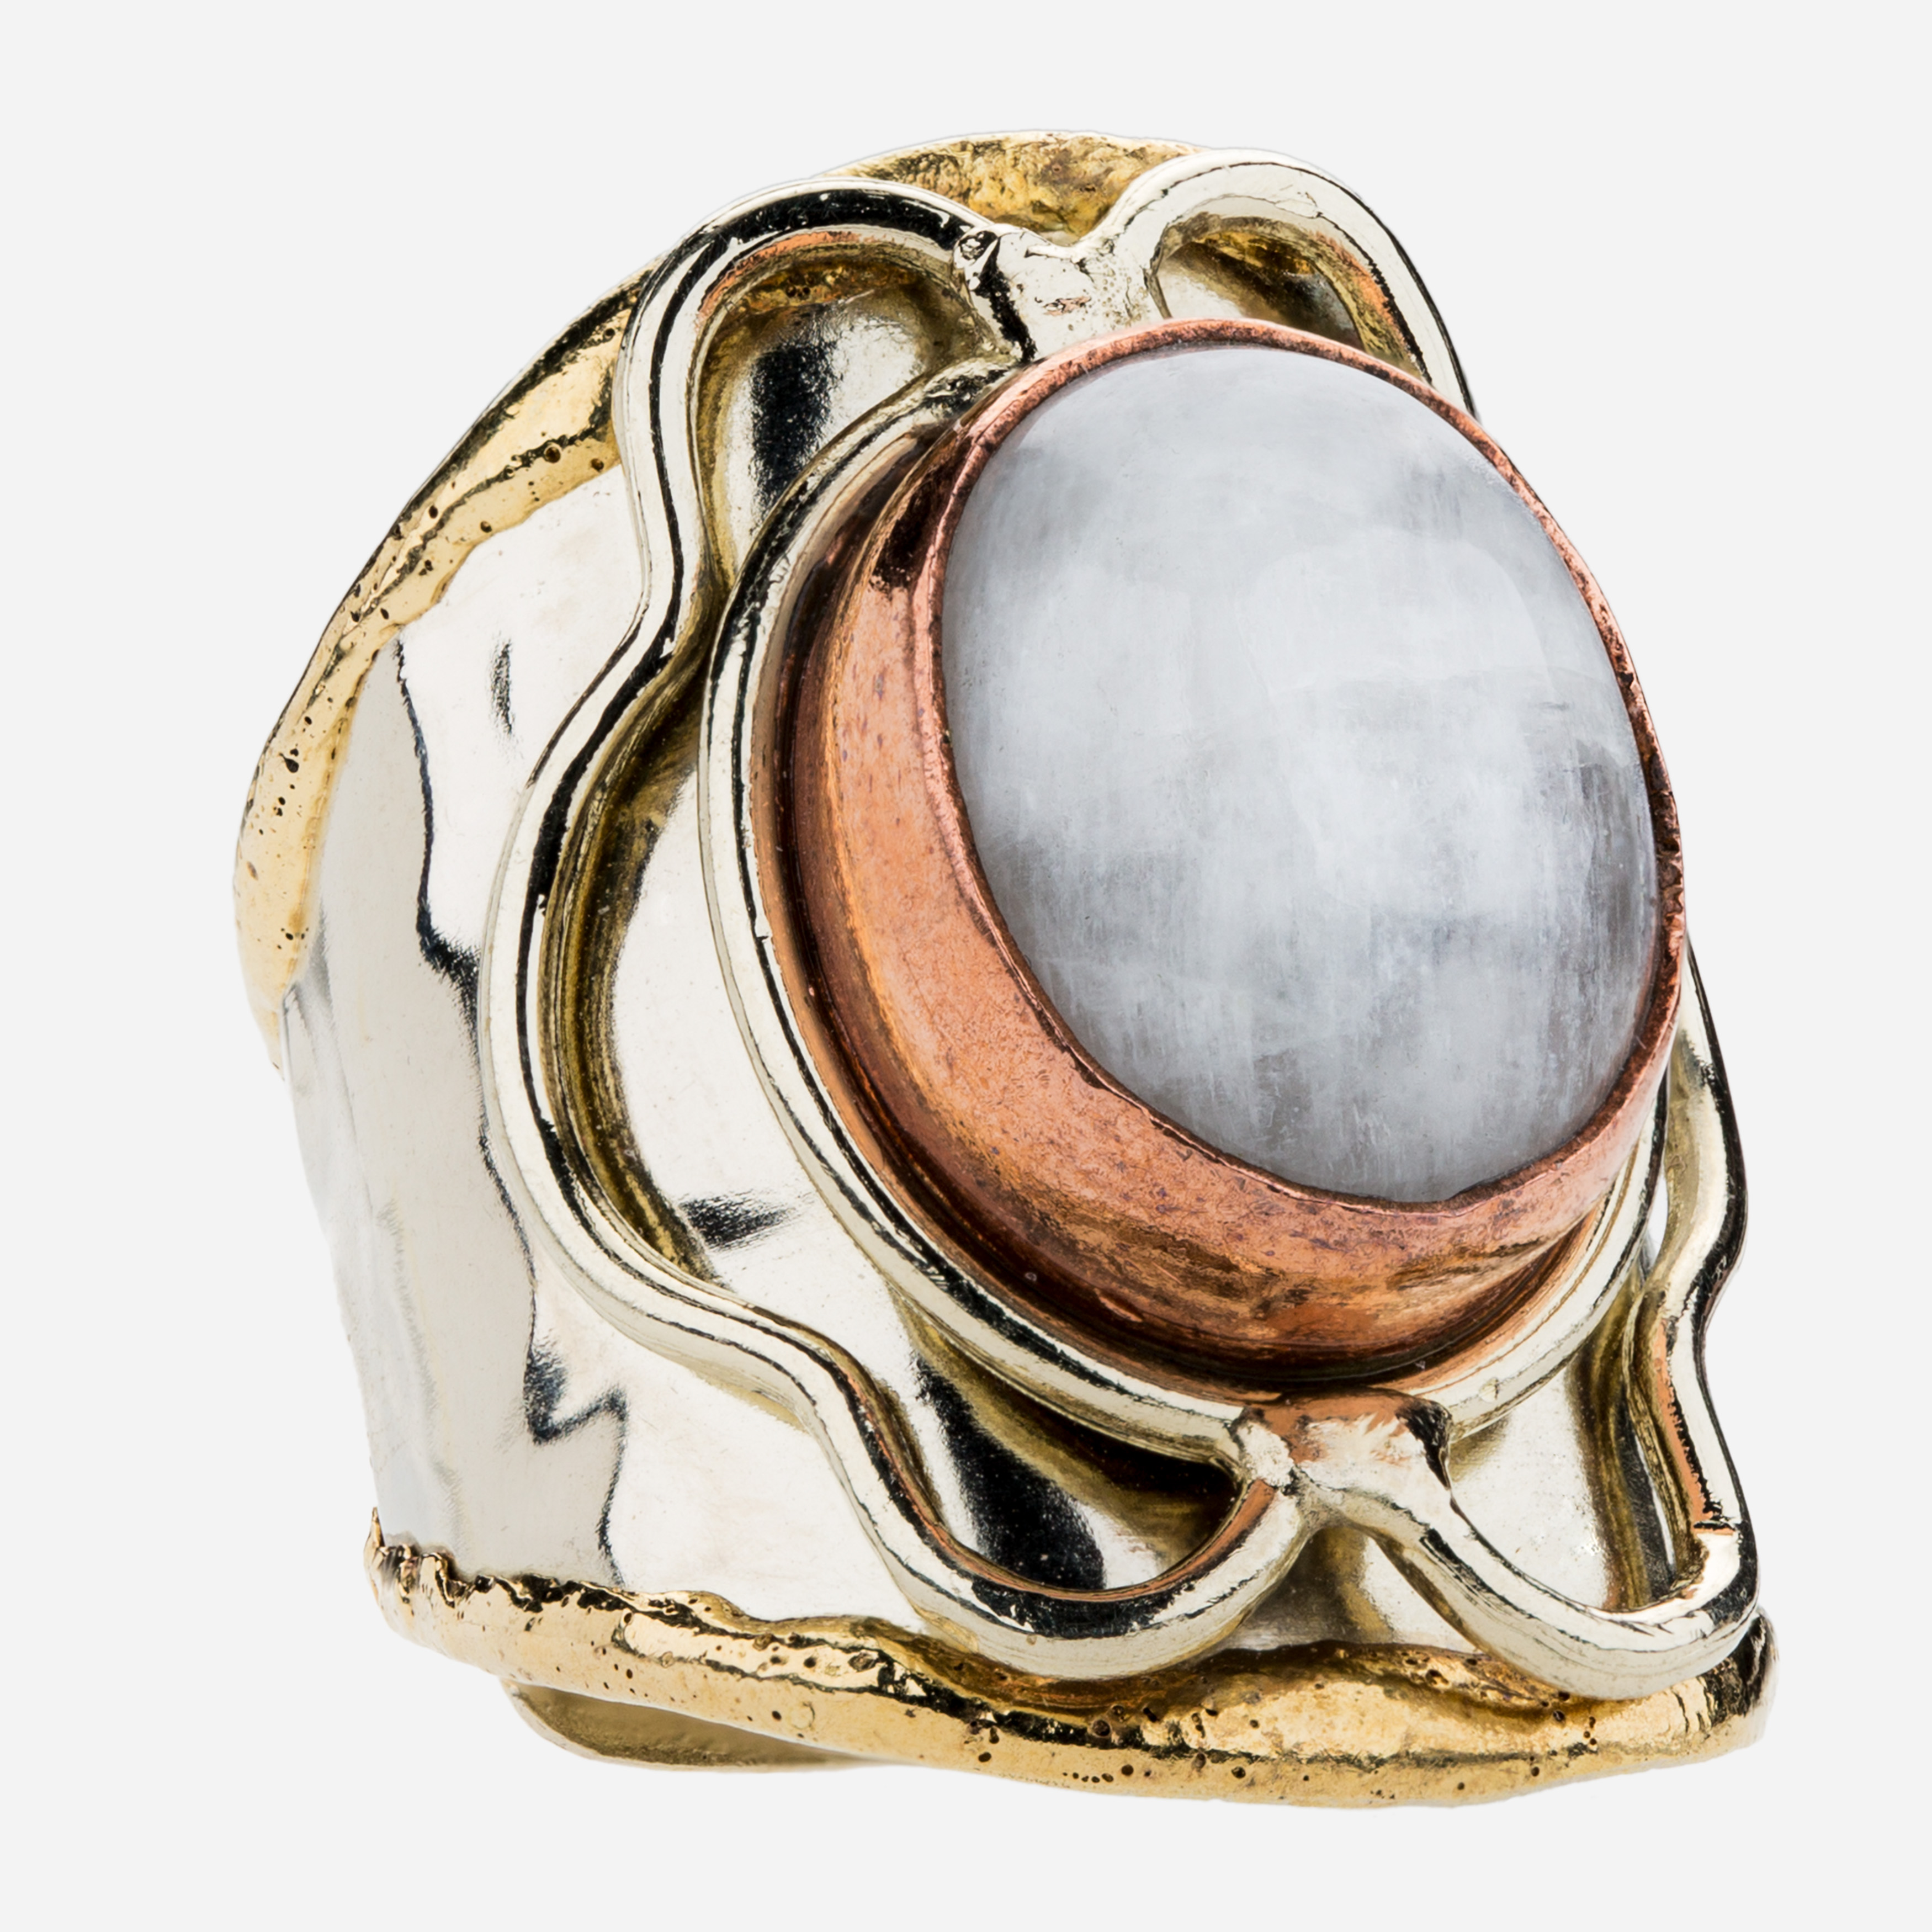 Tara Mesa Rainbow Moonstone Ring Crafted in German Silver—with an accent of Brass and Copper